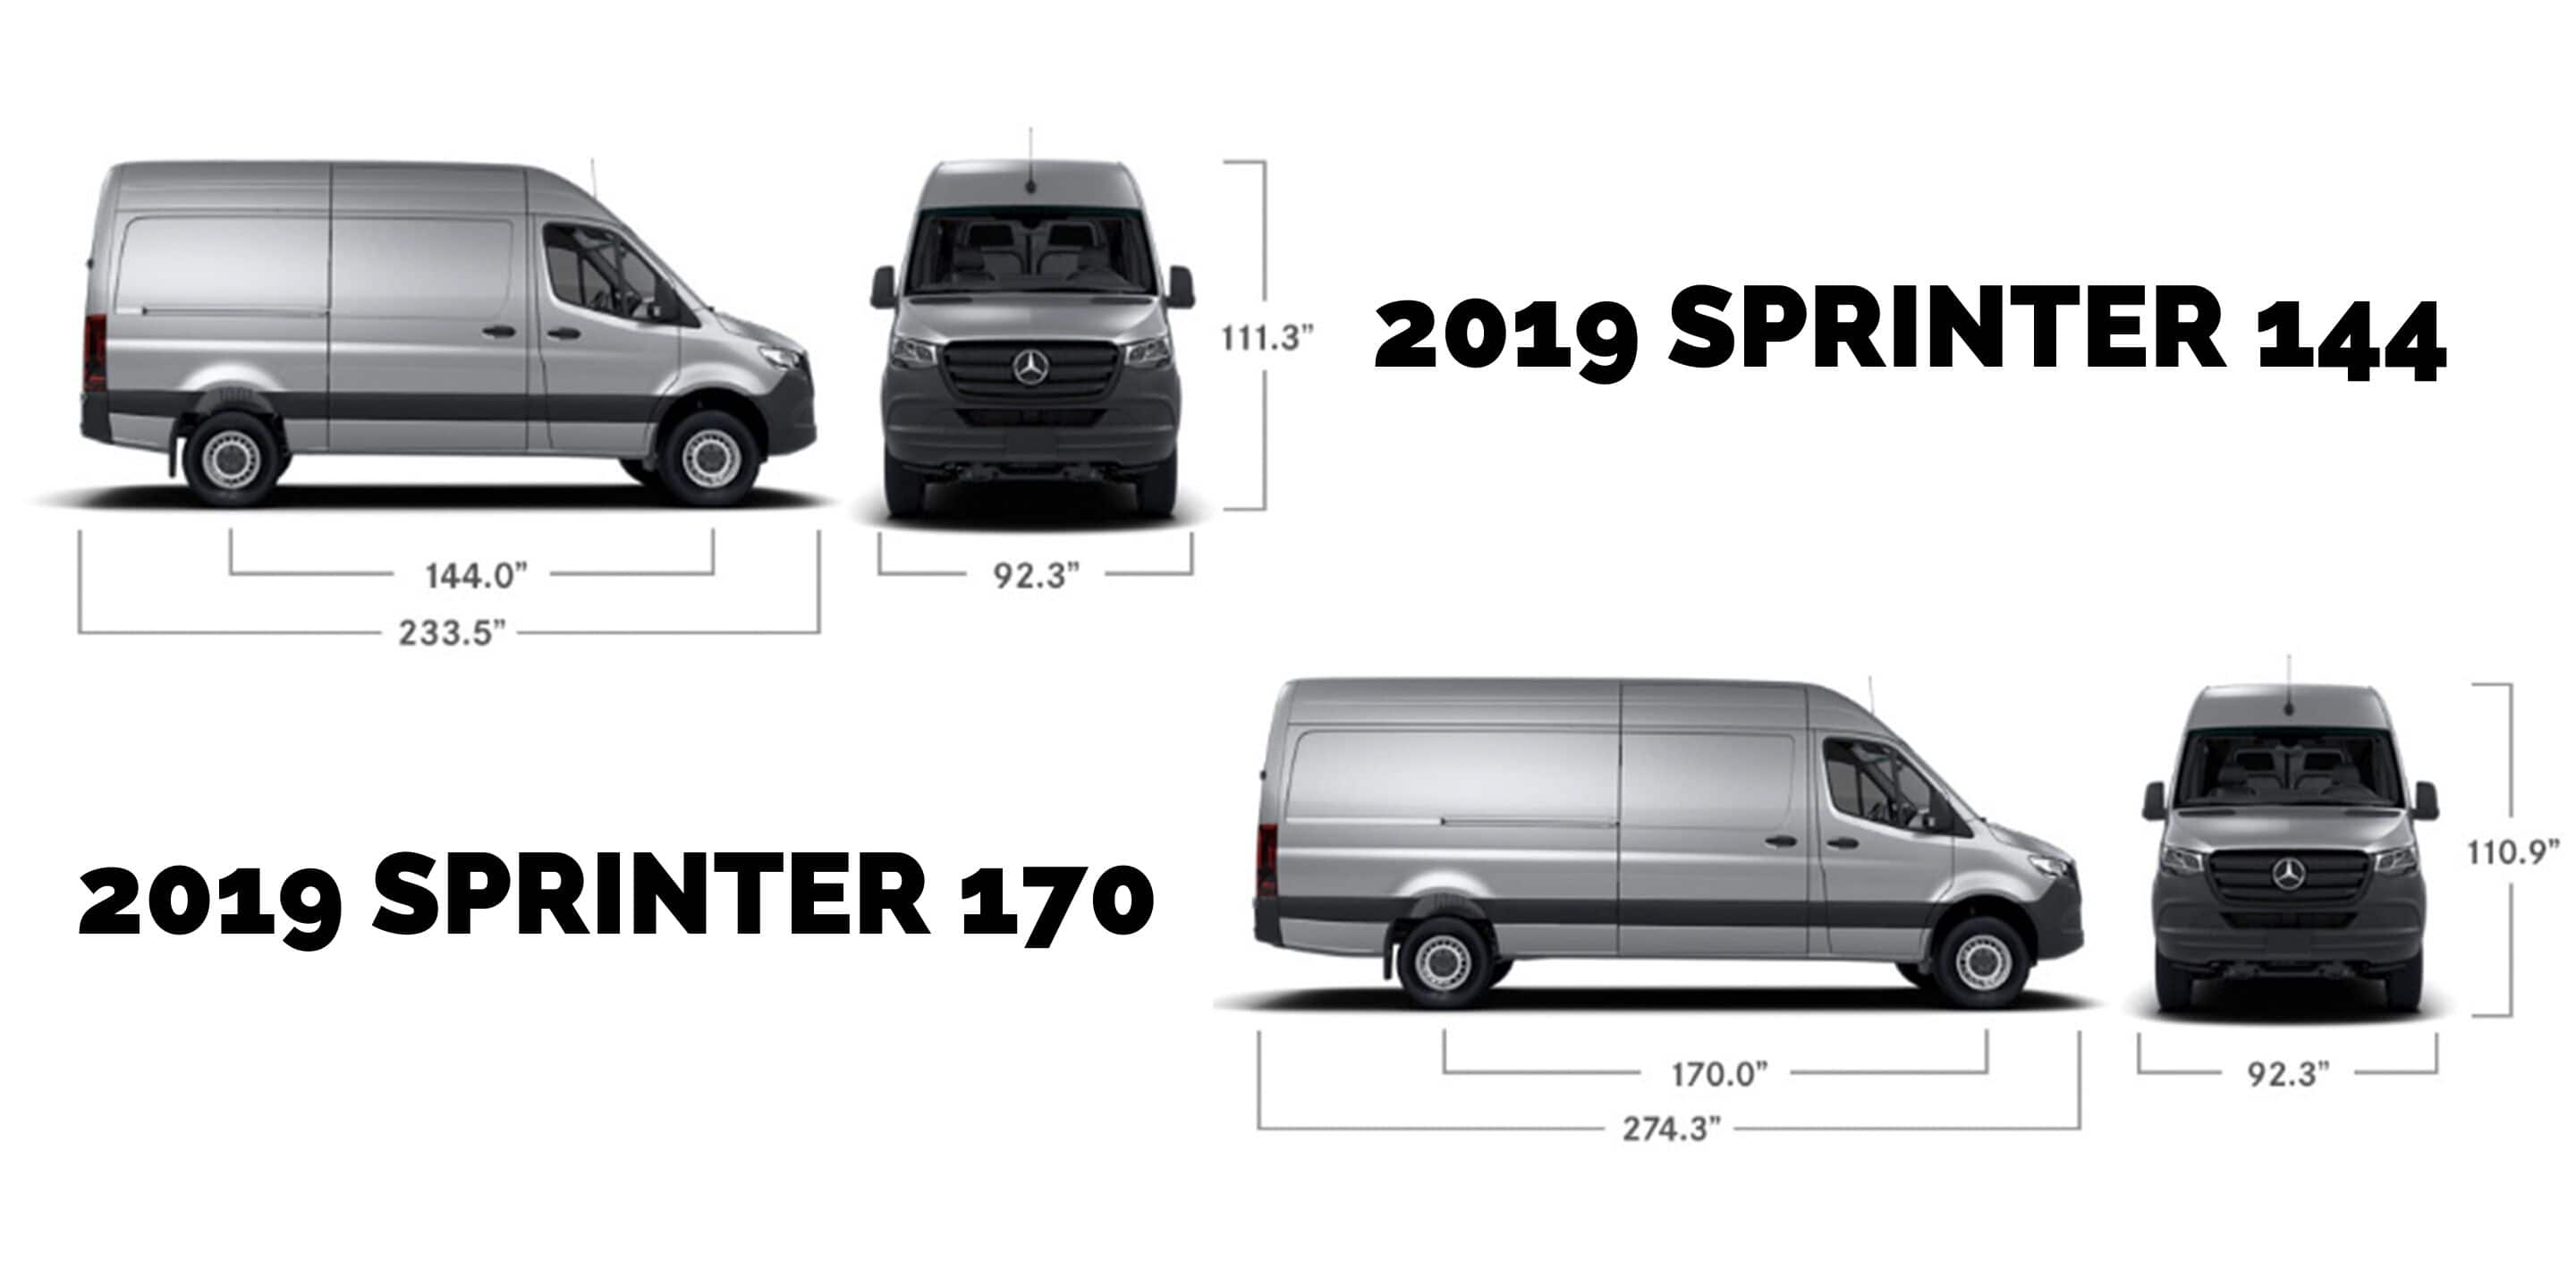 Sprinter 144 vs. 170 Specifications